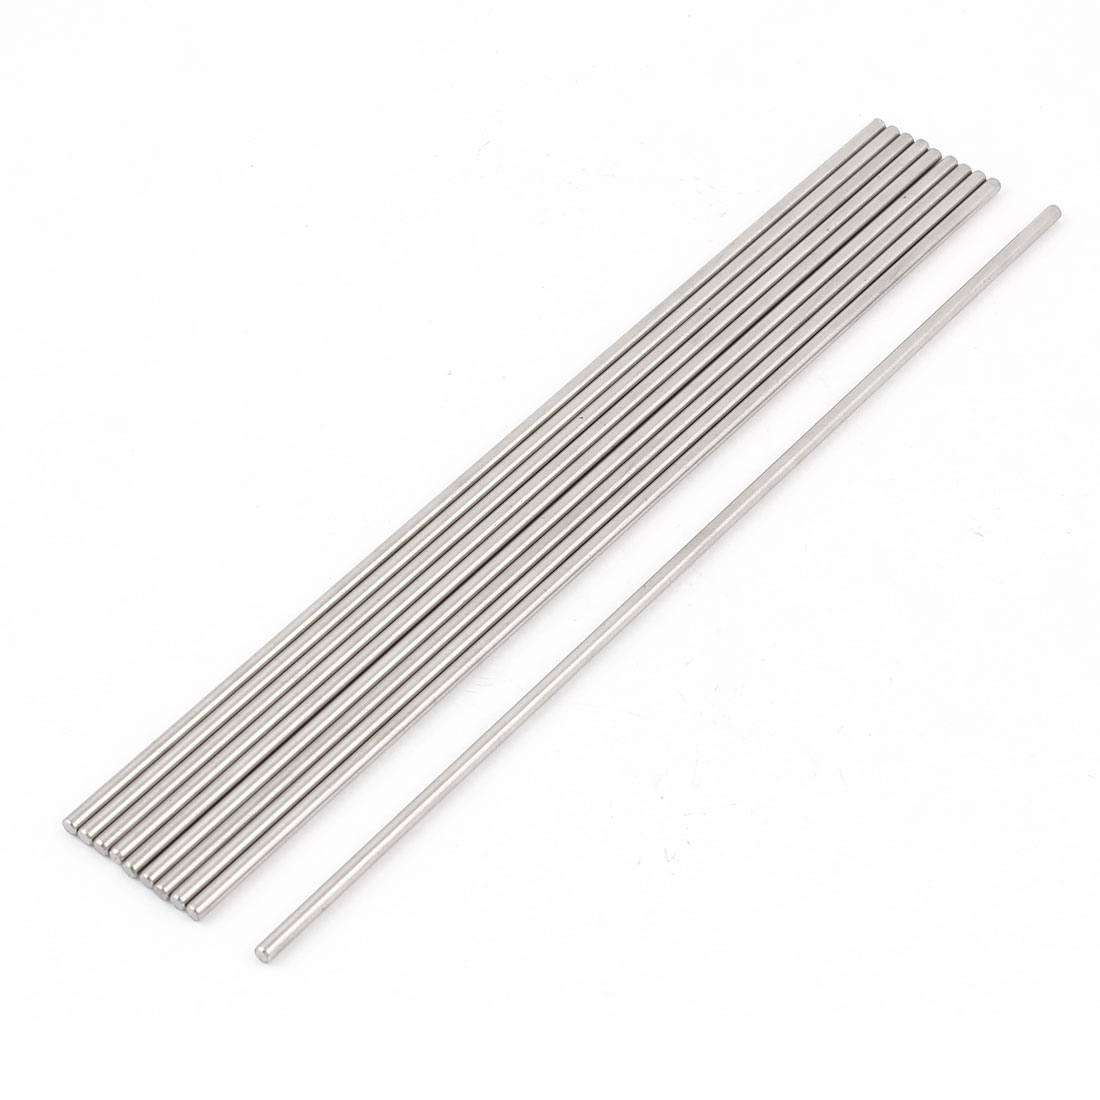 10 Pcs RC Airplane Model Part Stainless Steel Round Rods Axles Bars 3mm x 200mm